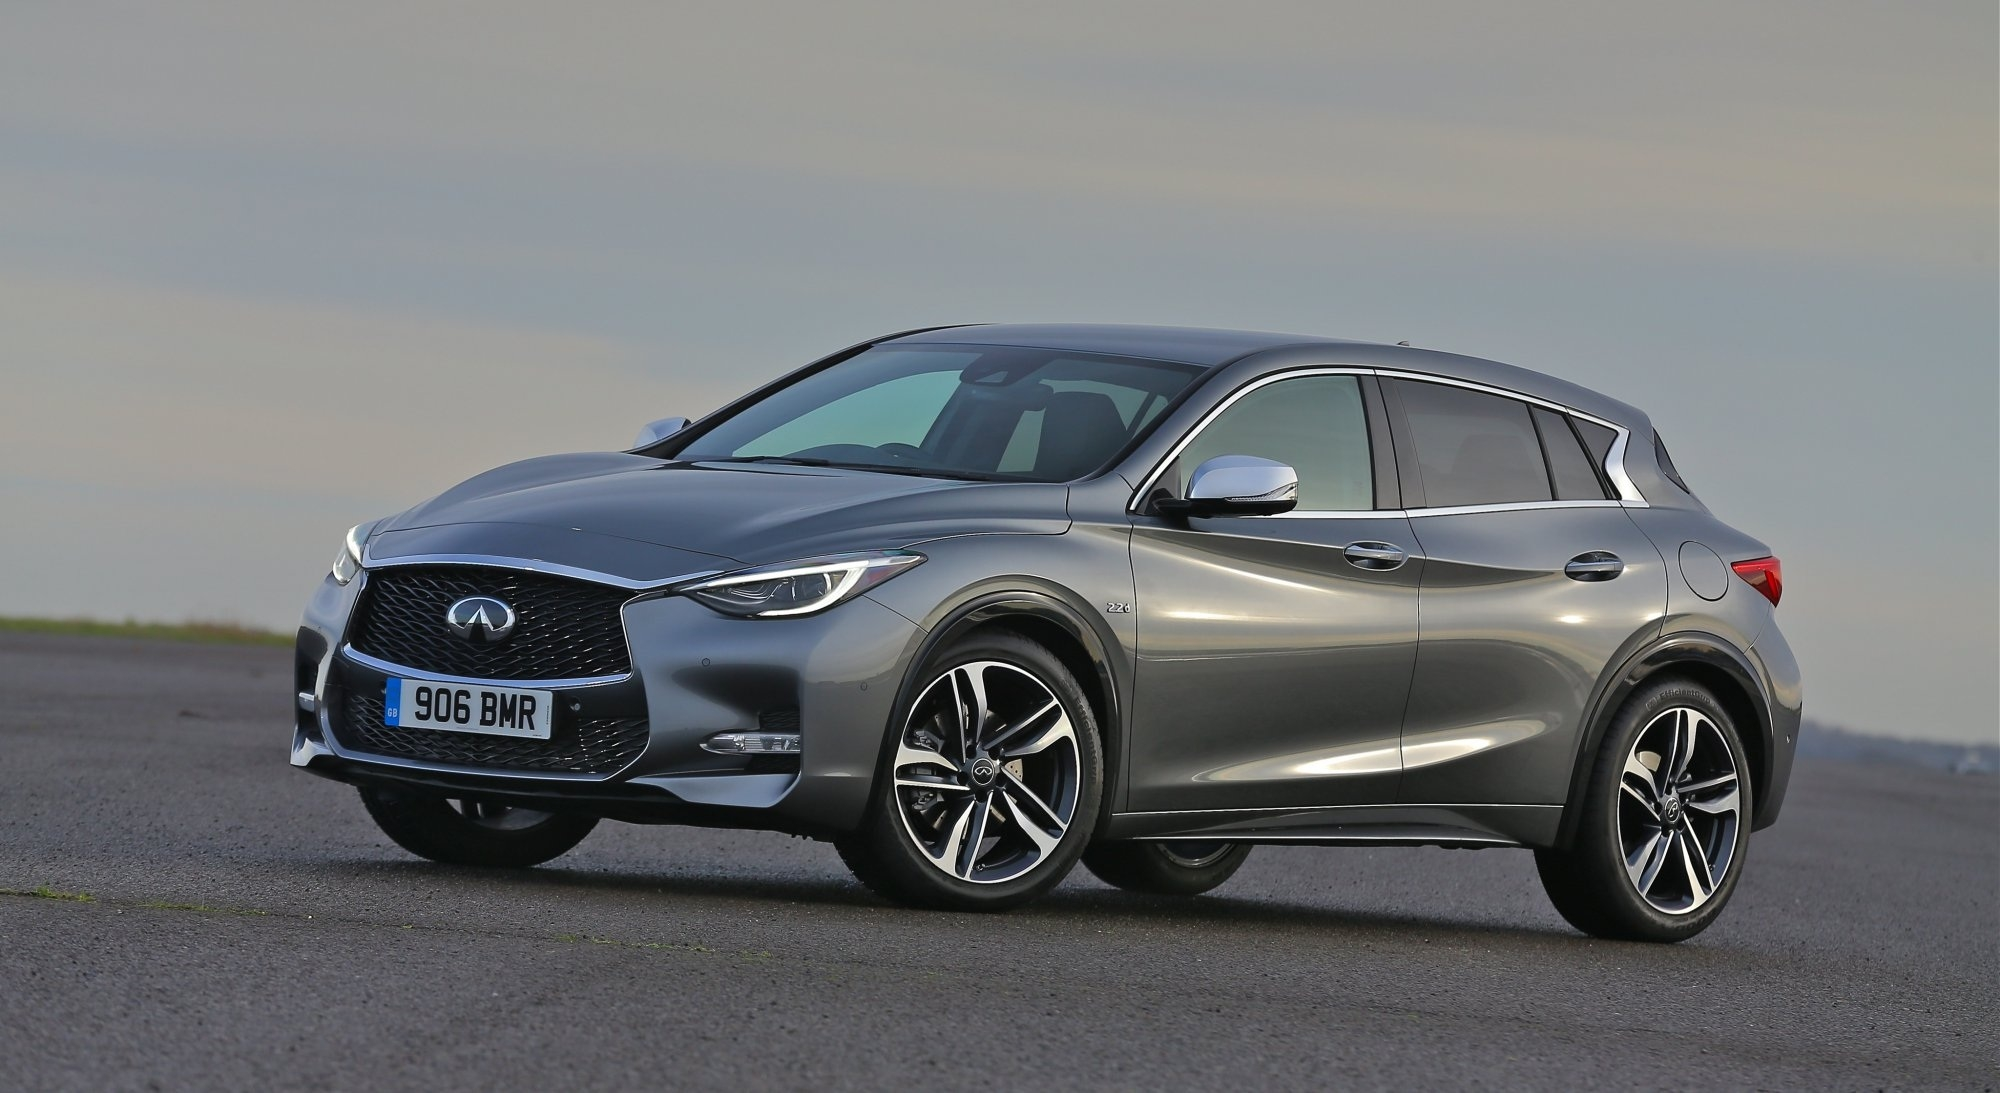 49 The Best 2020 Infiniti Q30 Research New